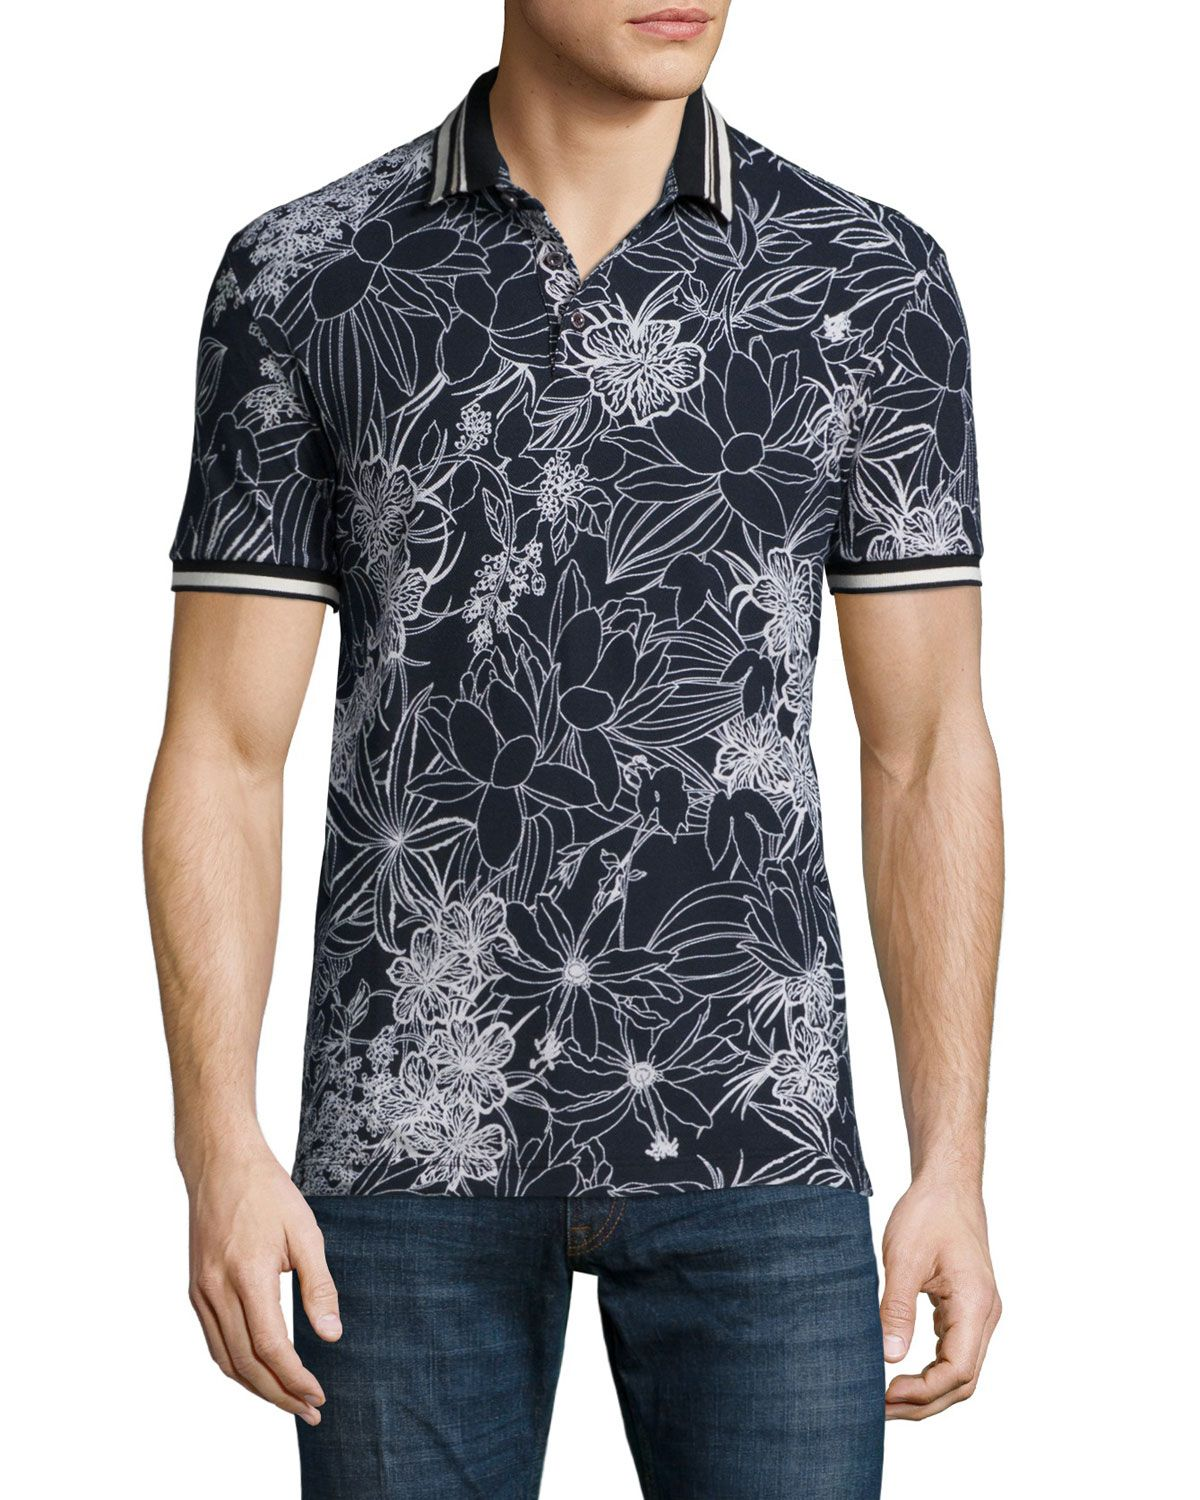 770b0326d3 Floral-Print Short-Sleeve Pique Polo Shirt, Black/White, Men's, Size: XL -  Etro